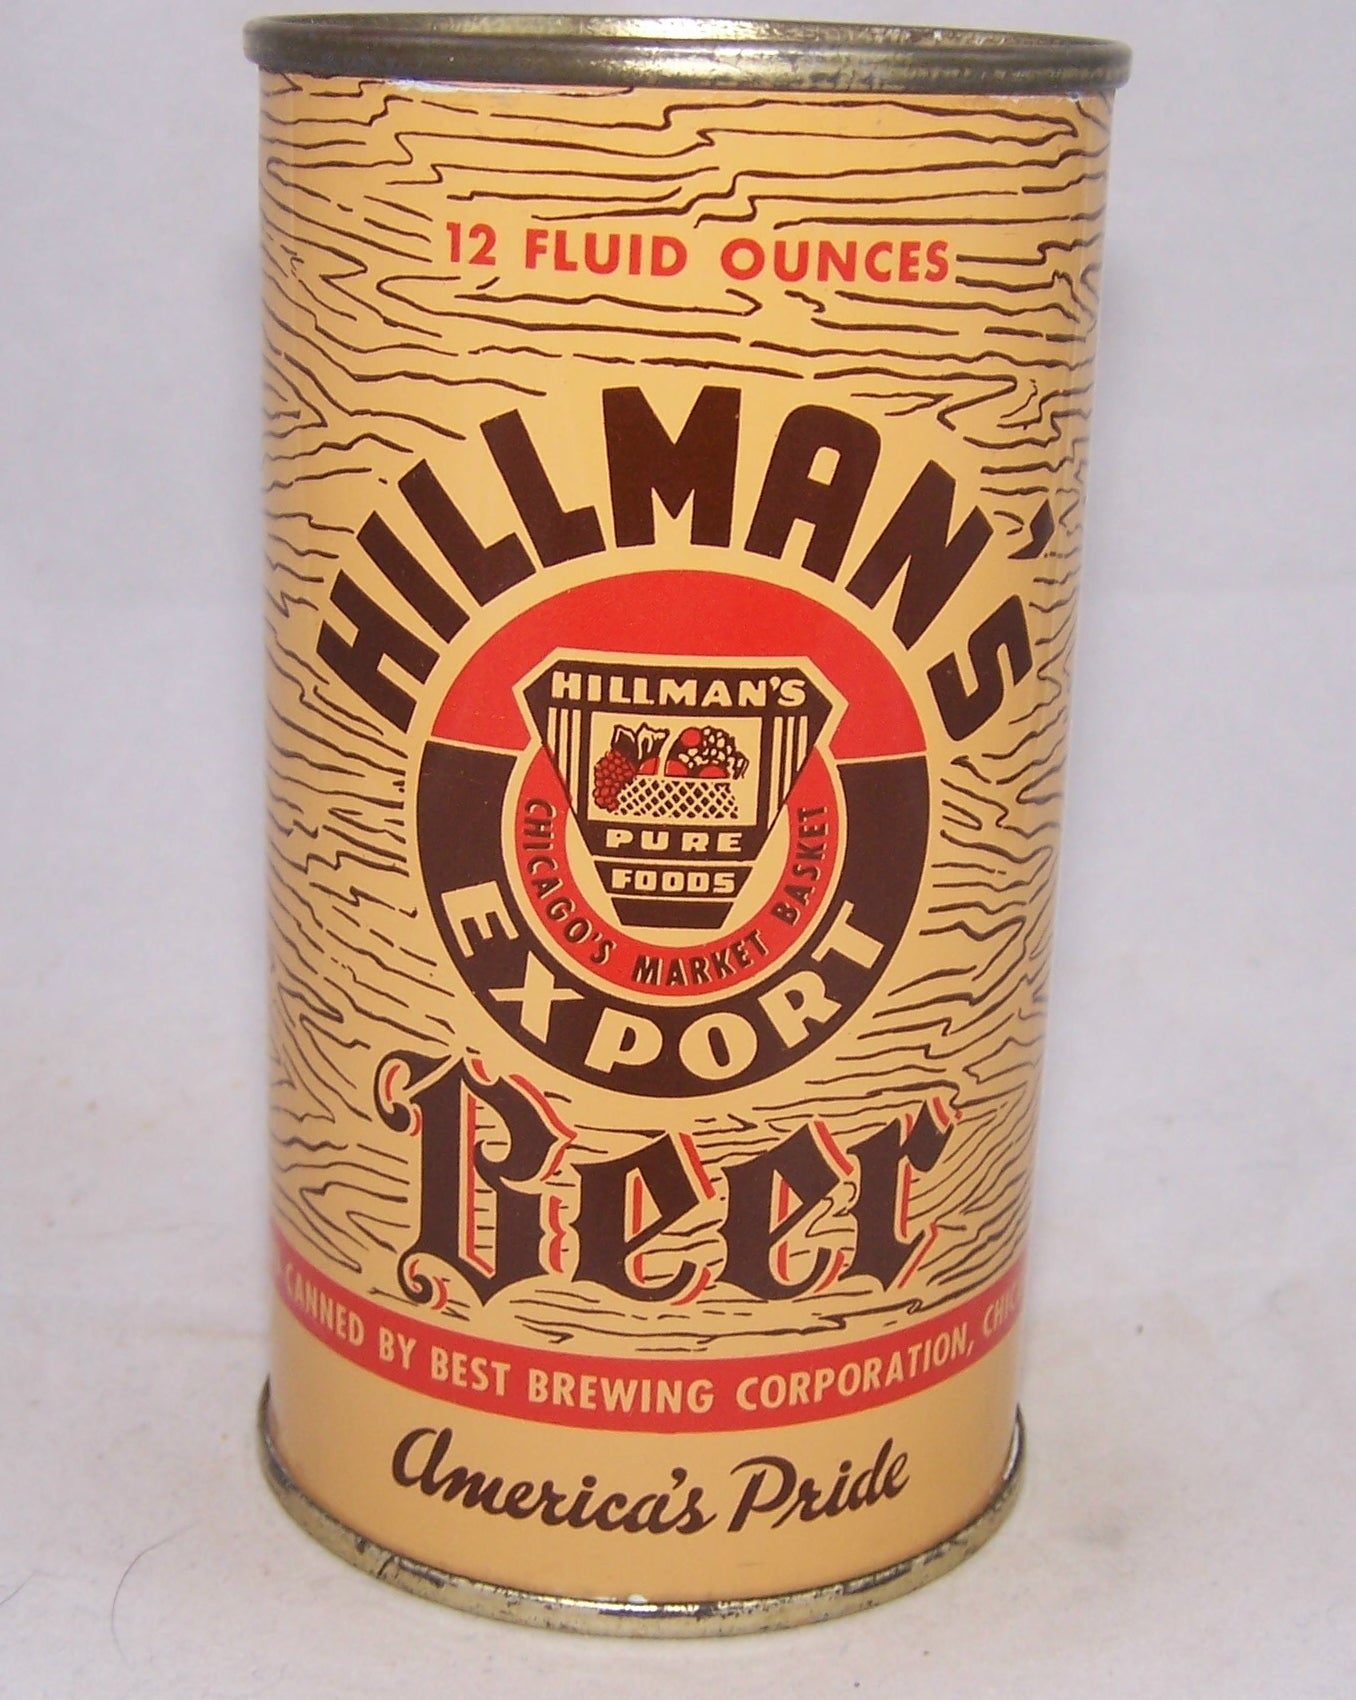 Hillman's Export Beer, USBC 82-17, Grade A1+   Sold on 02/15/18